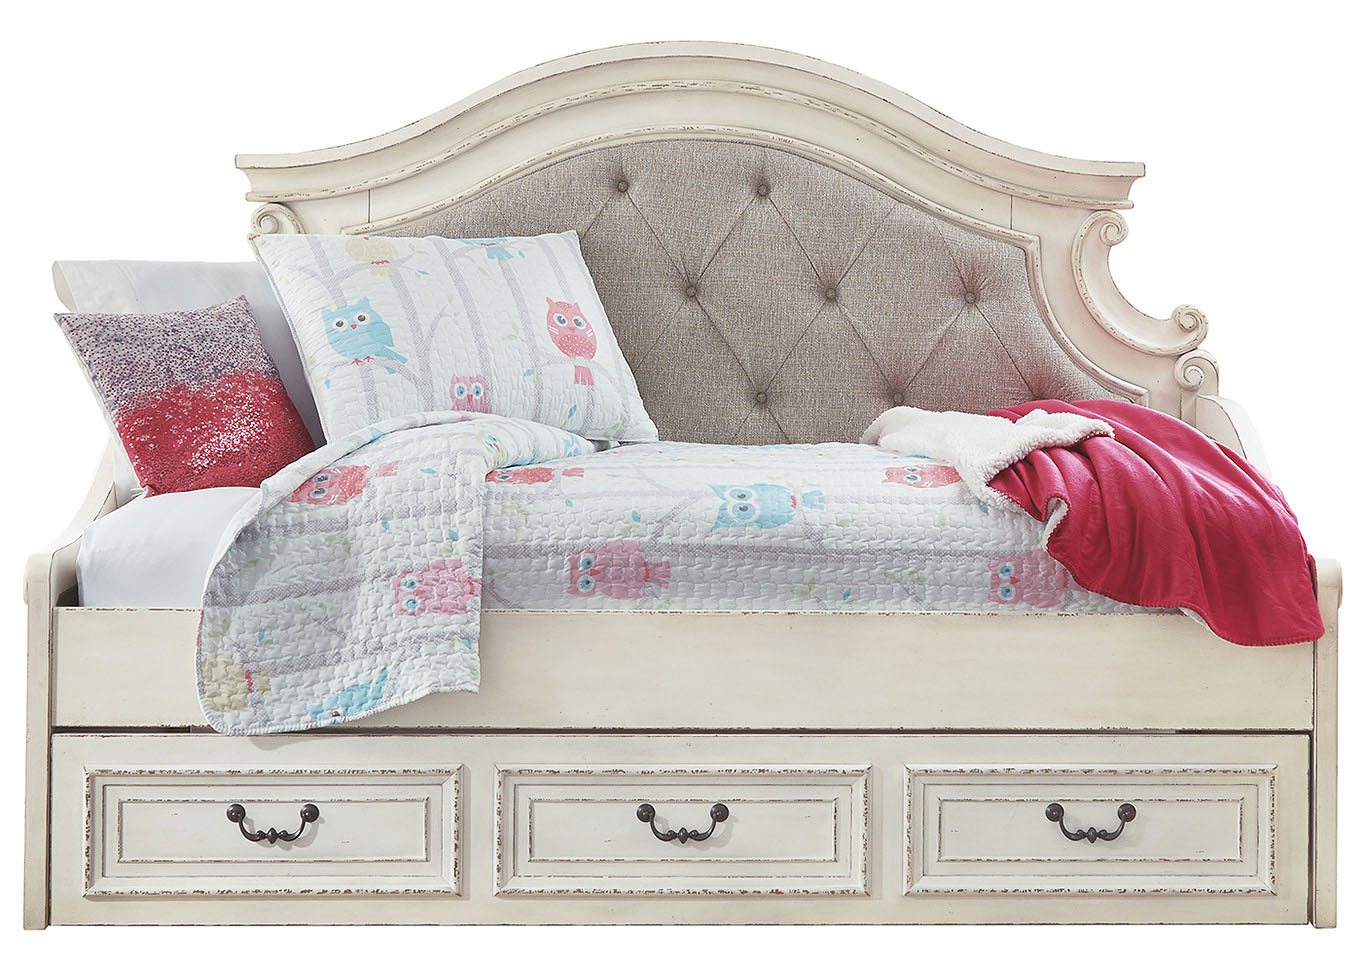 Realyn Chipped White Daybed Storage,Signature Design By Ashley